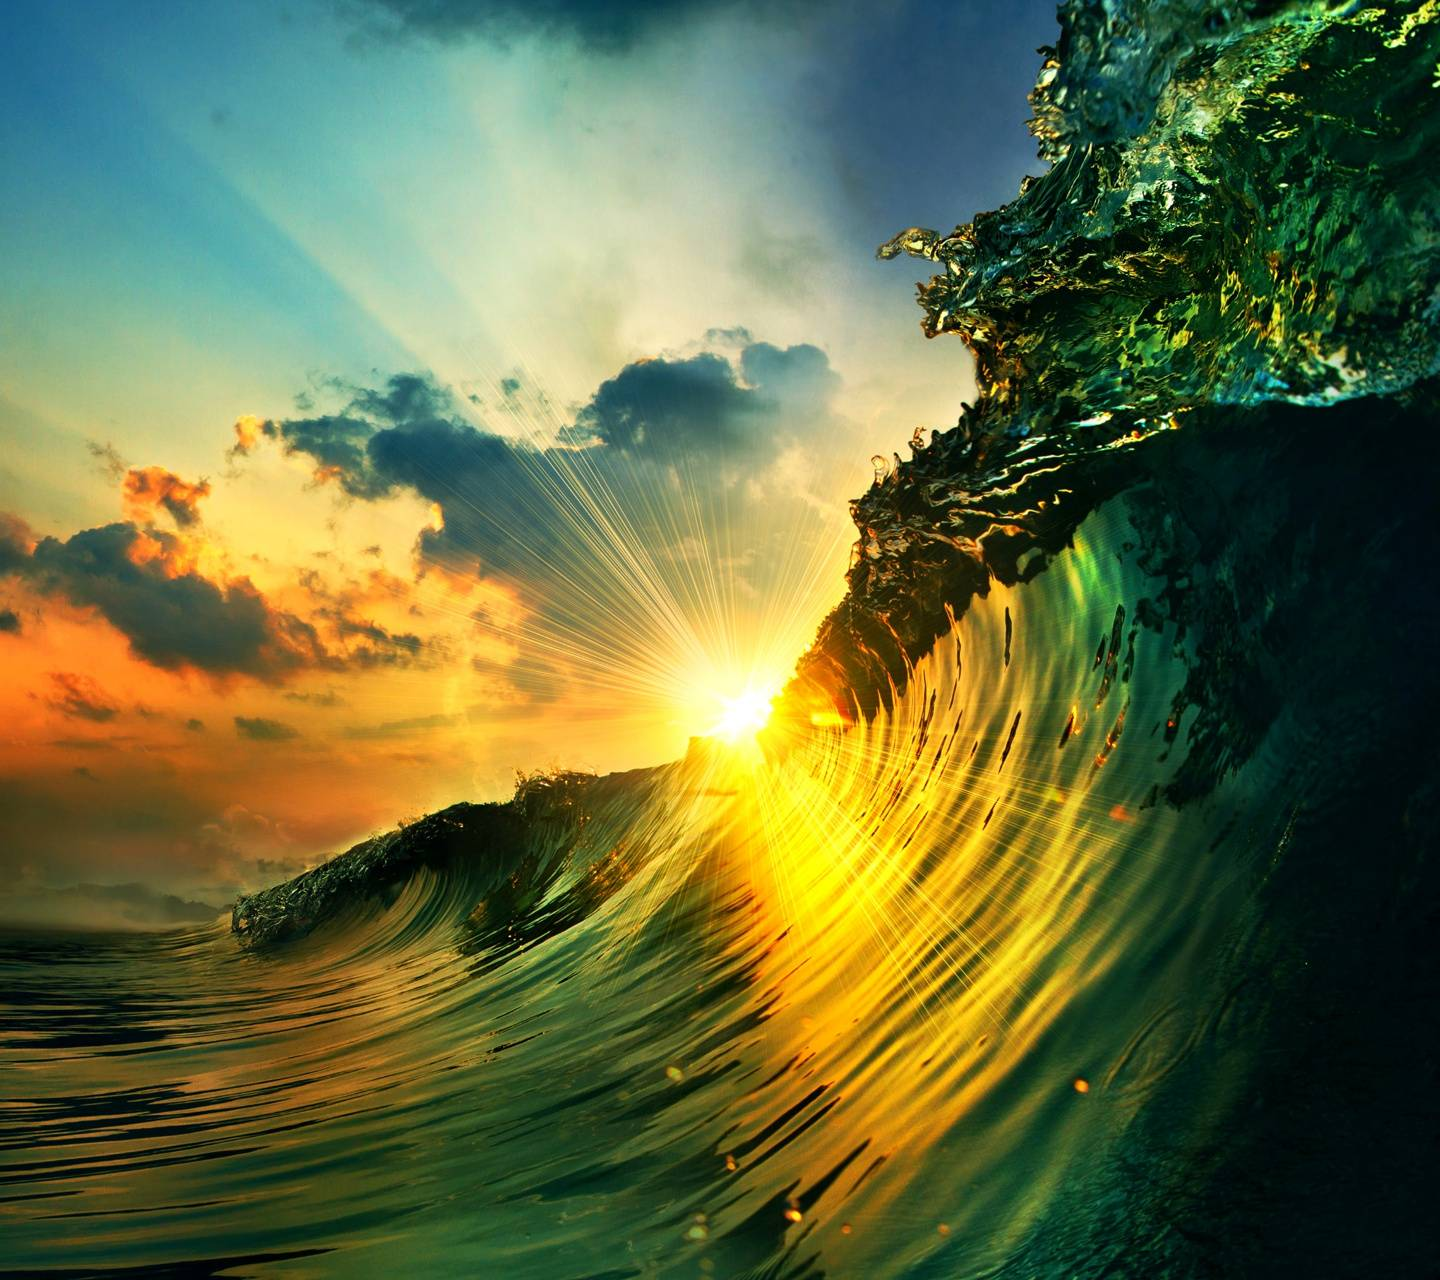 sunset over a wave